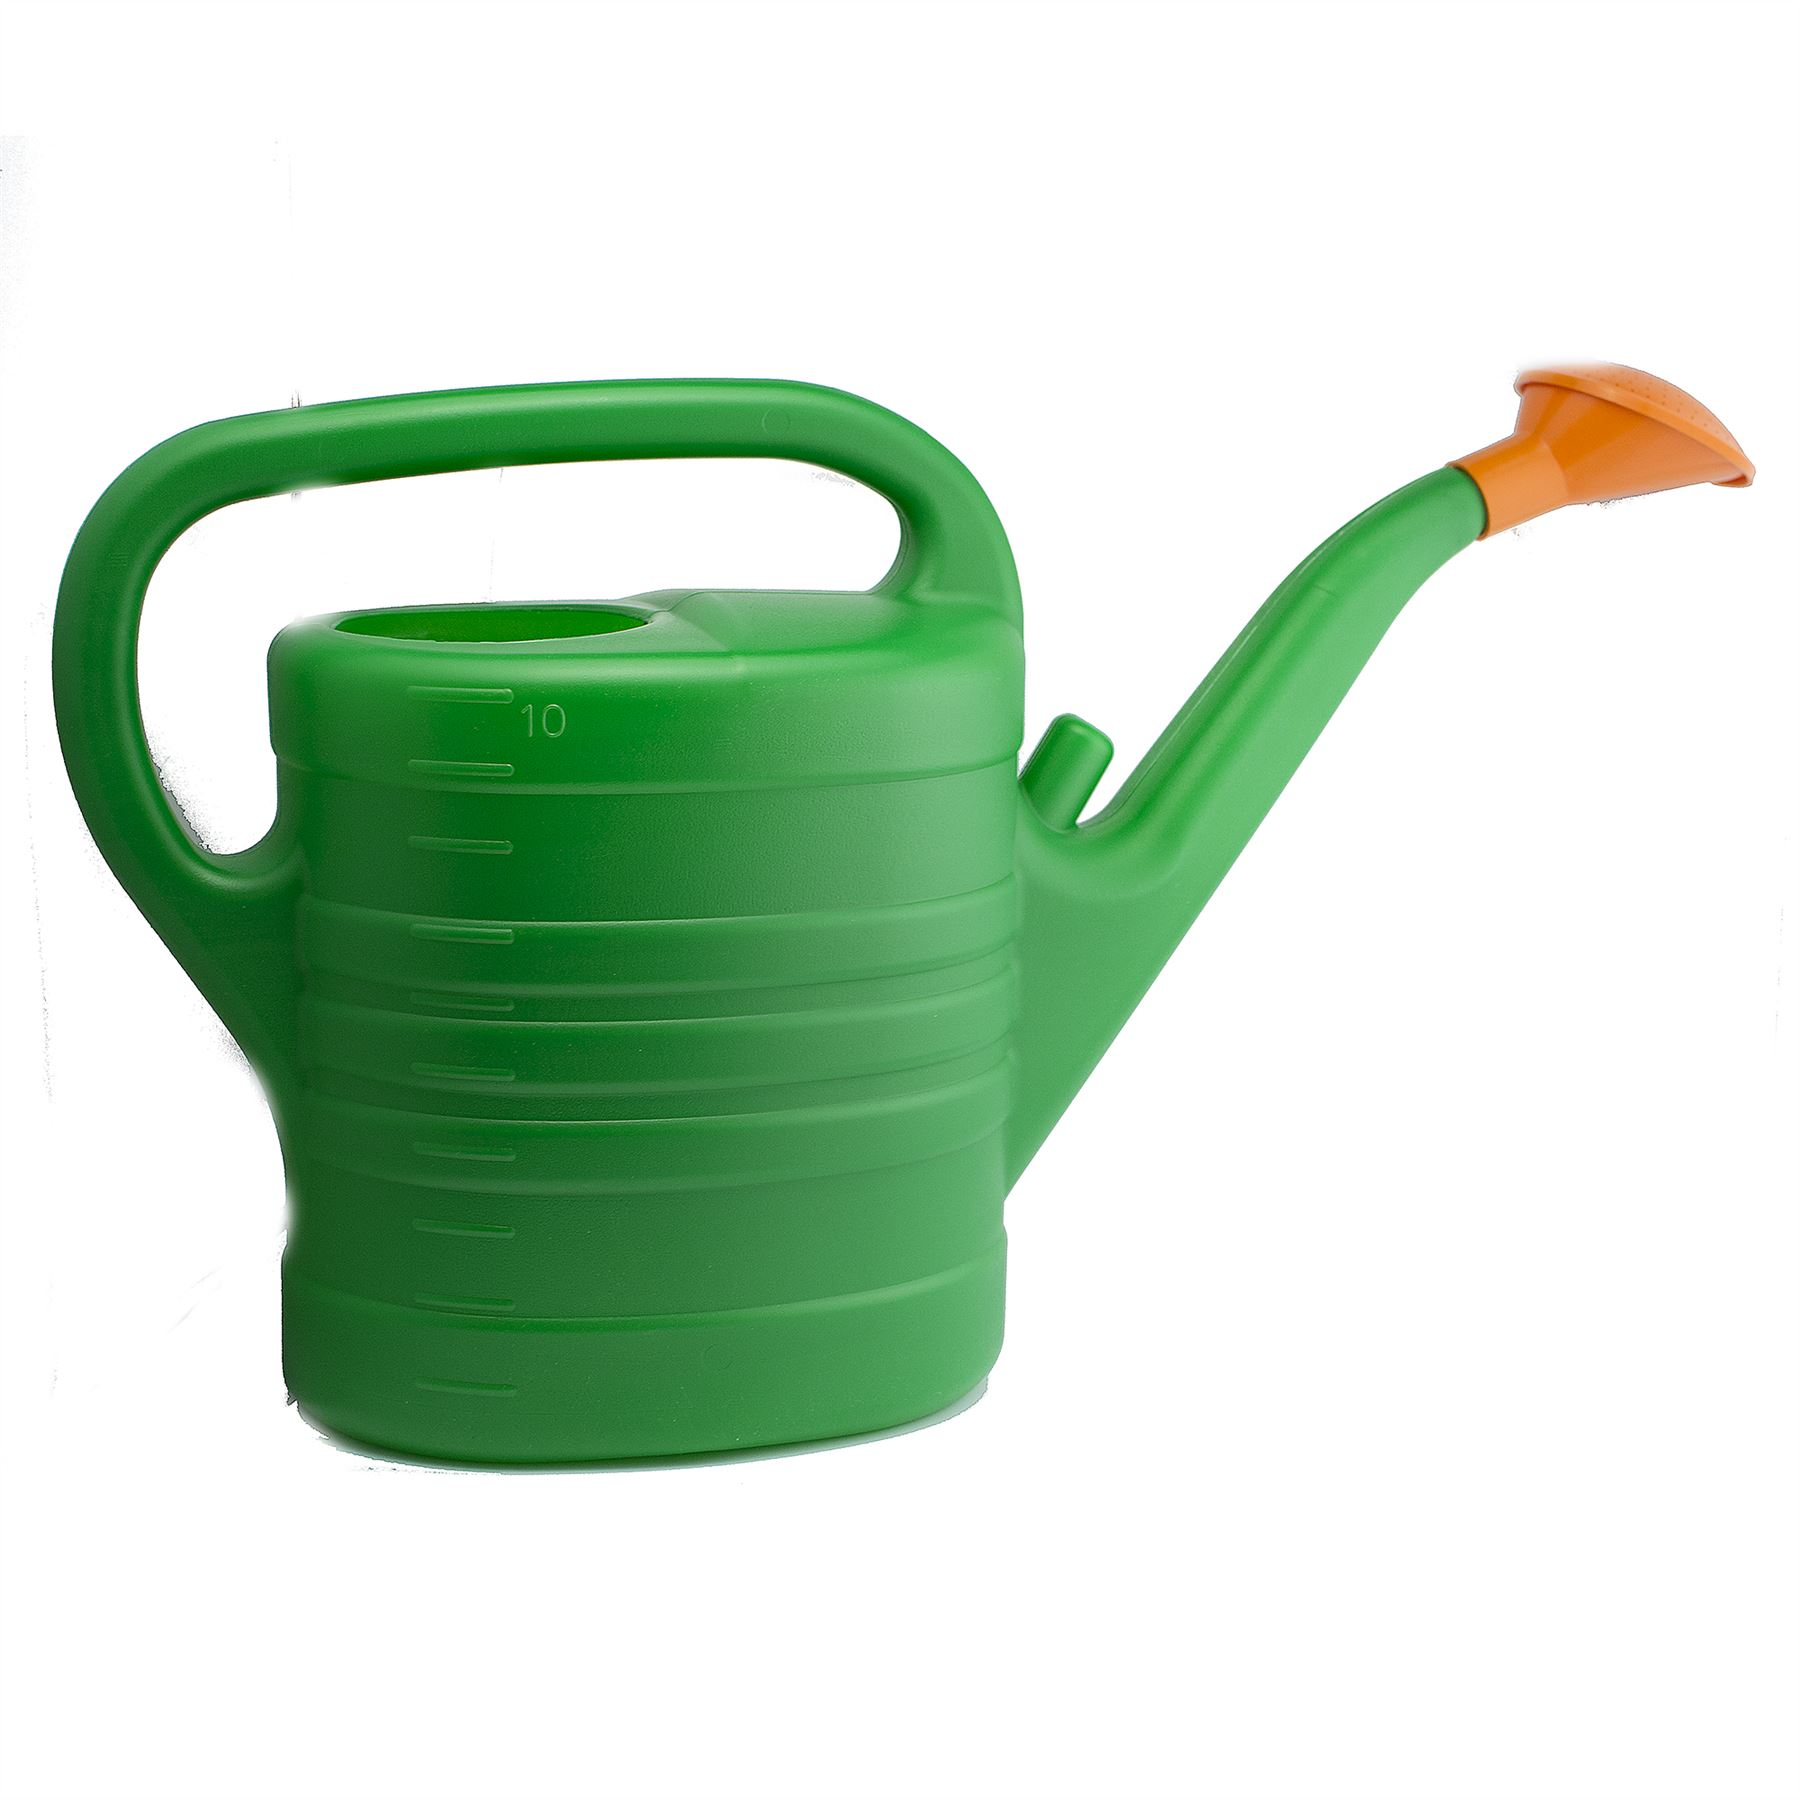 Watering Cans With Long Spouts Quantum Garden Lime Line Garden Watering Can 10l